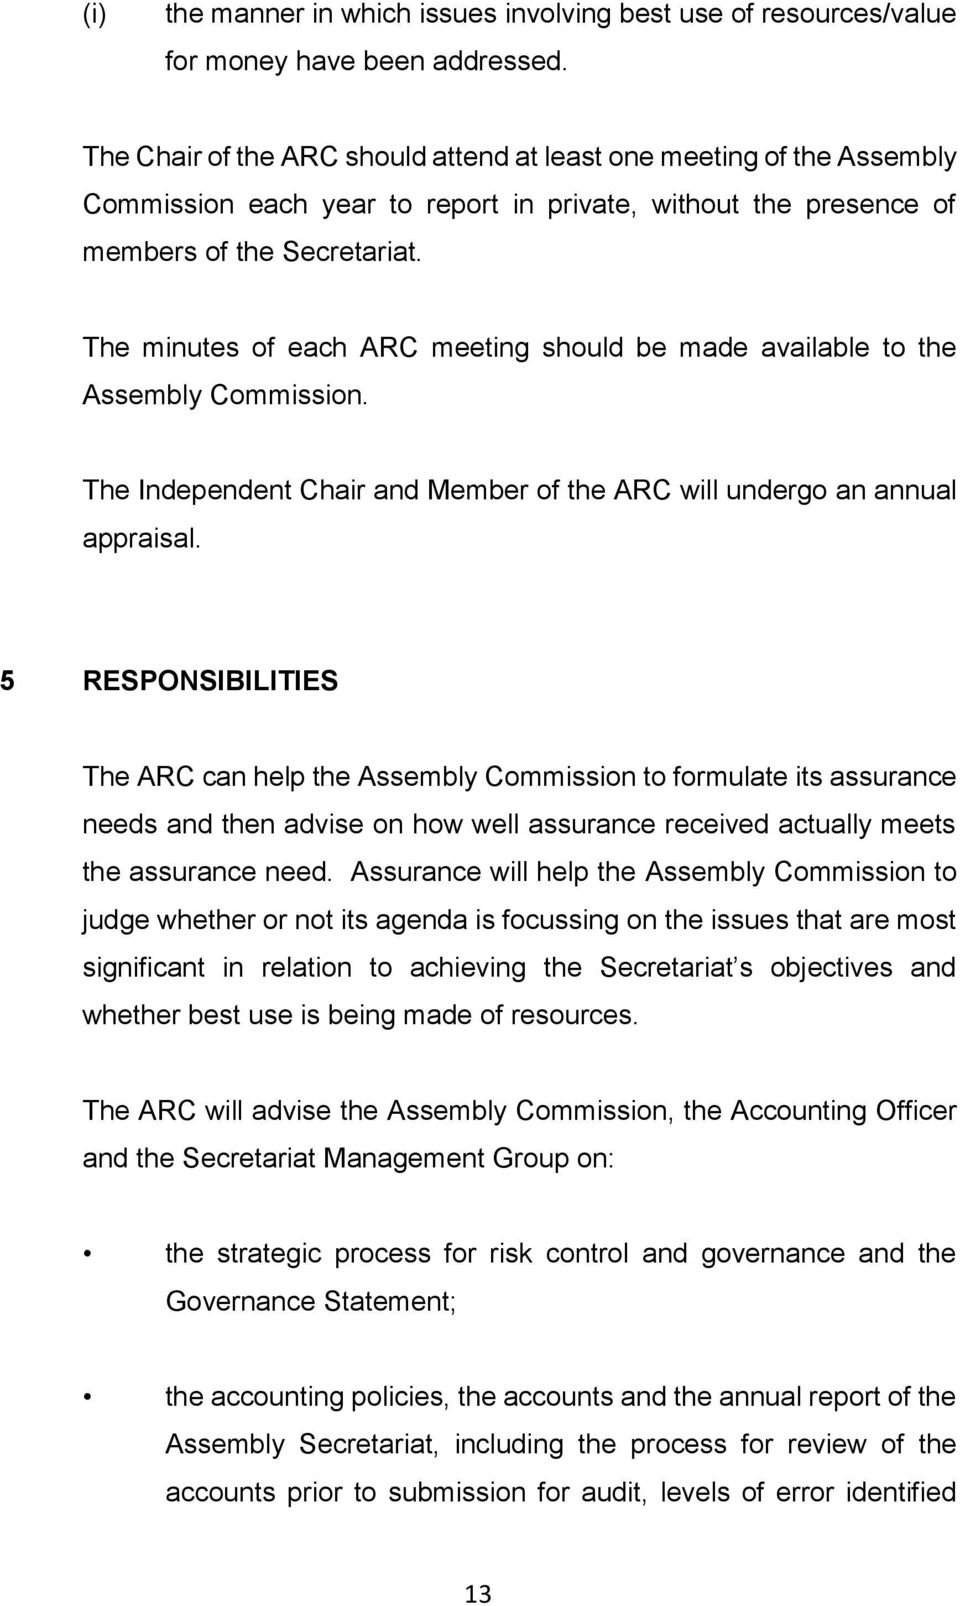 The minutes of each ARC meeting should be made available to the Assembly Commission. The Independent Chair and Member of the ARC will undergo an annual appraisal.